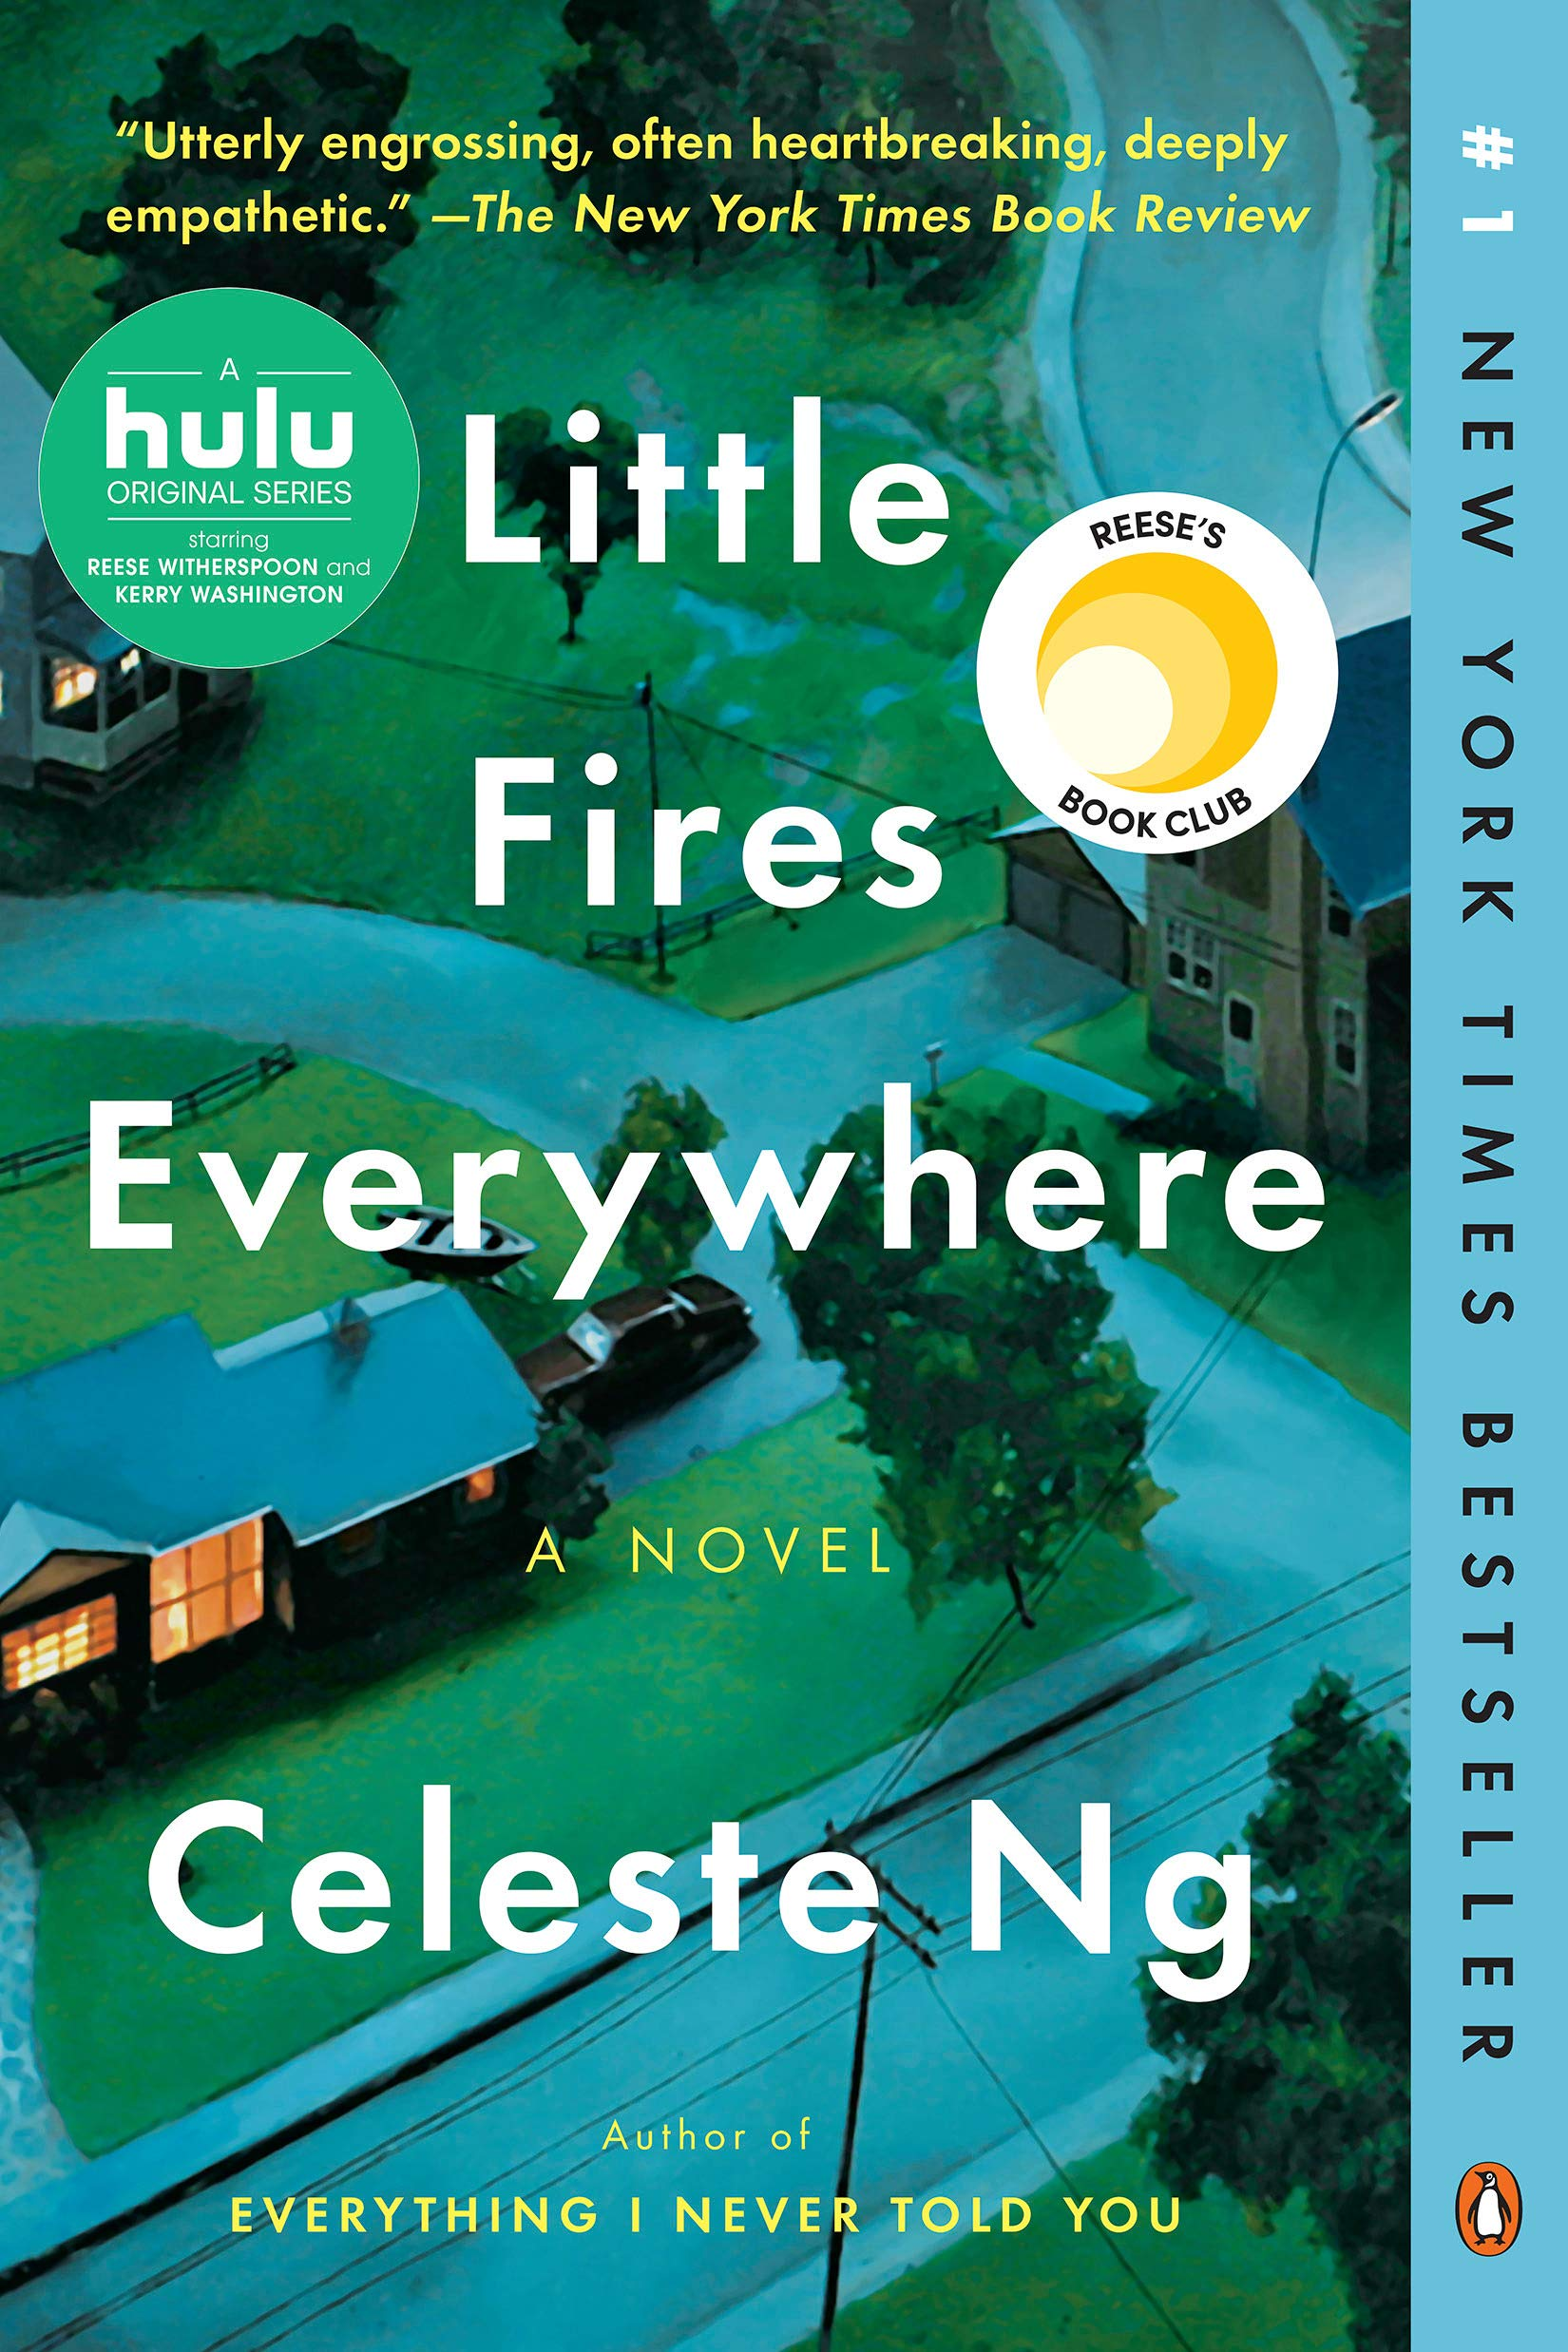 Amazon.com: Little Fires Everywhere: A Novel (9780735224315): Ng ...